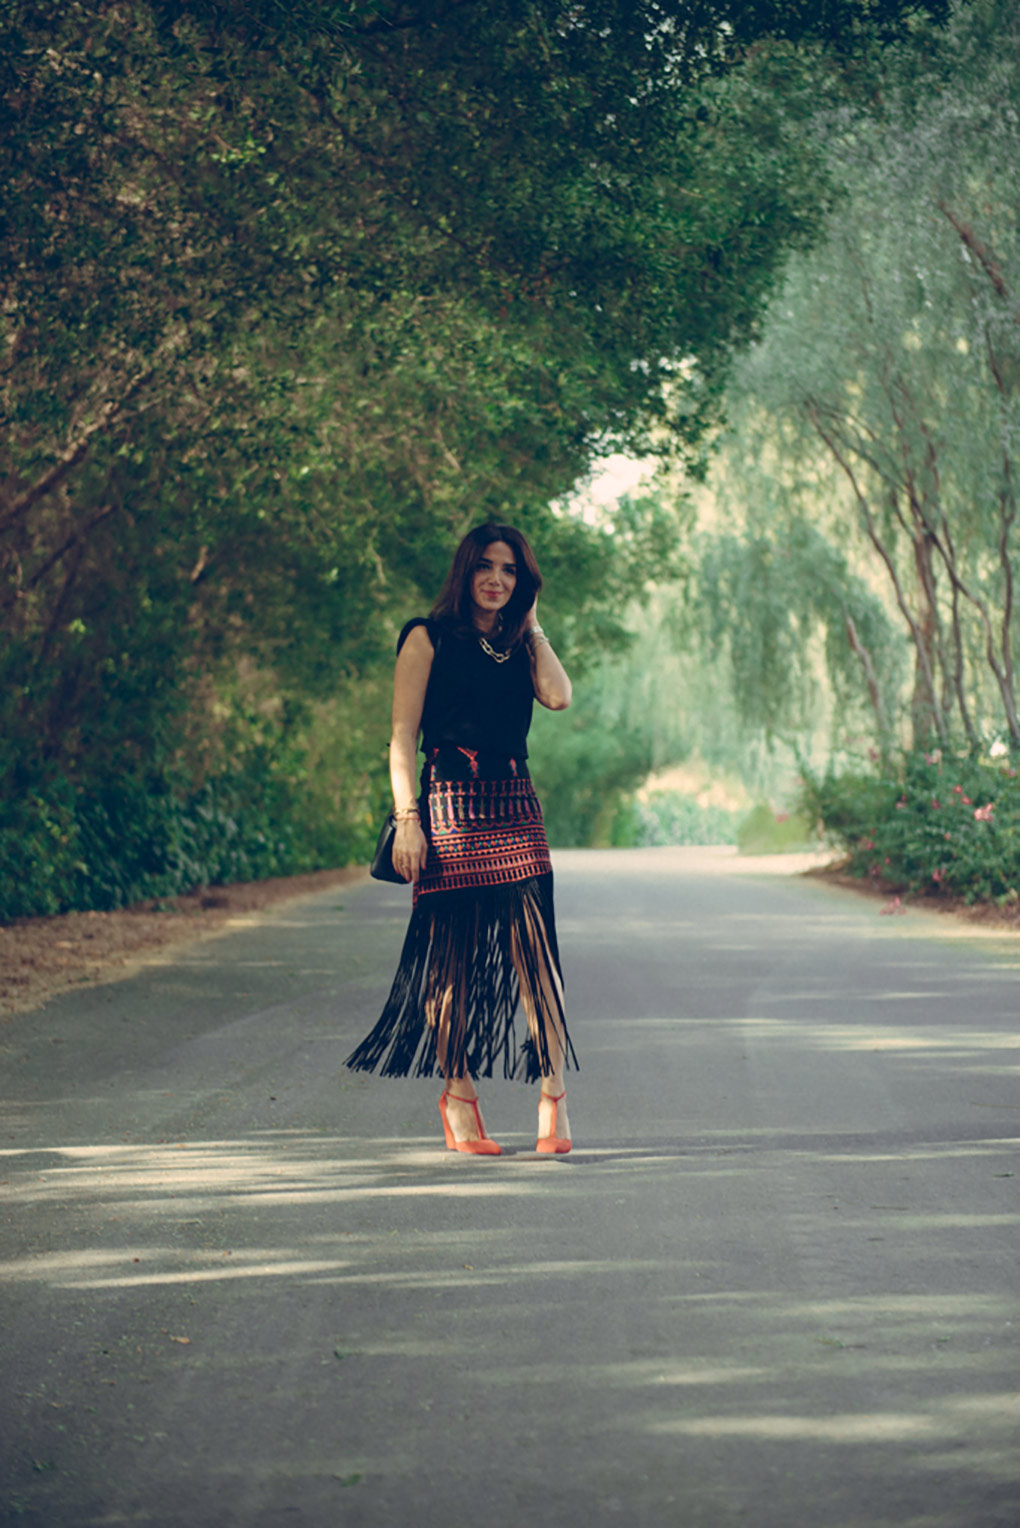 Lyla_Love_Fashion_Mochi_Fringe_skirt-5